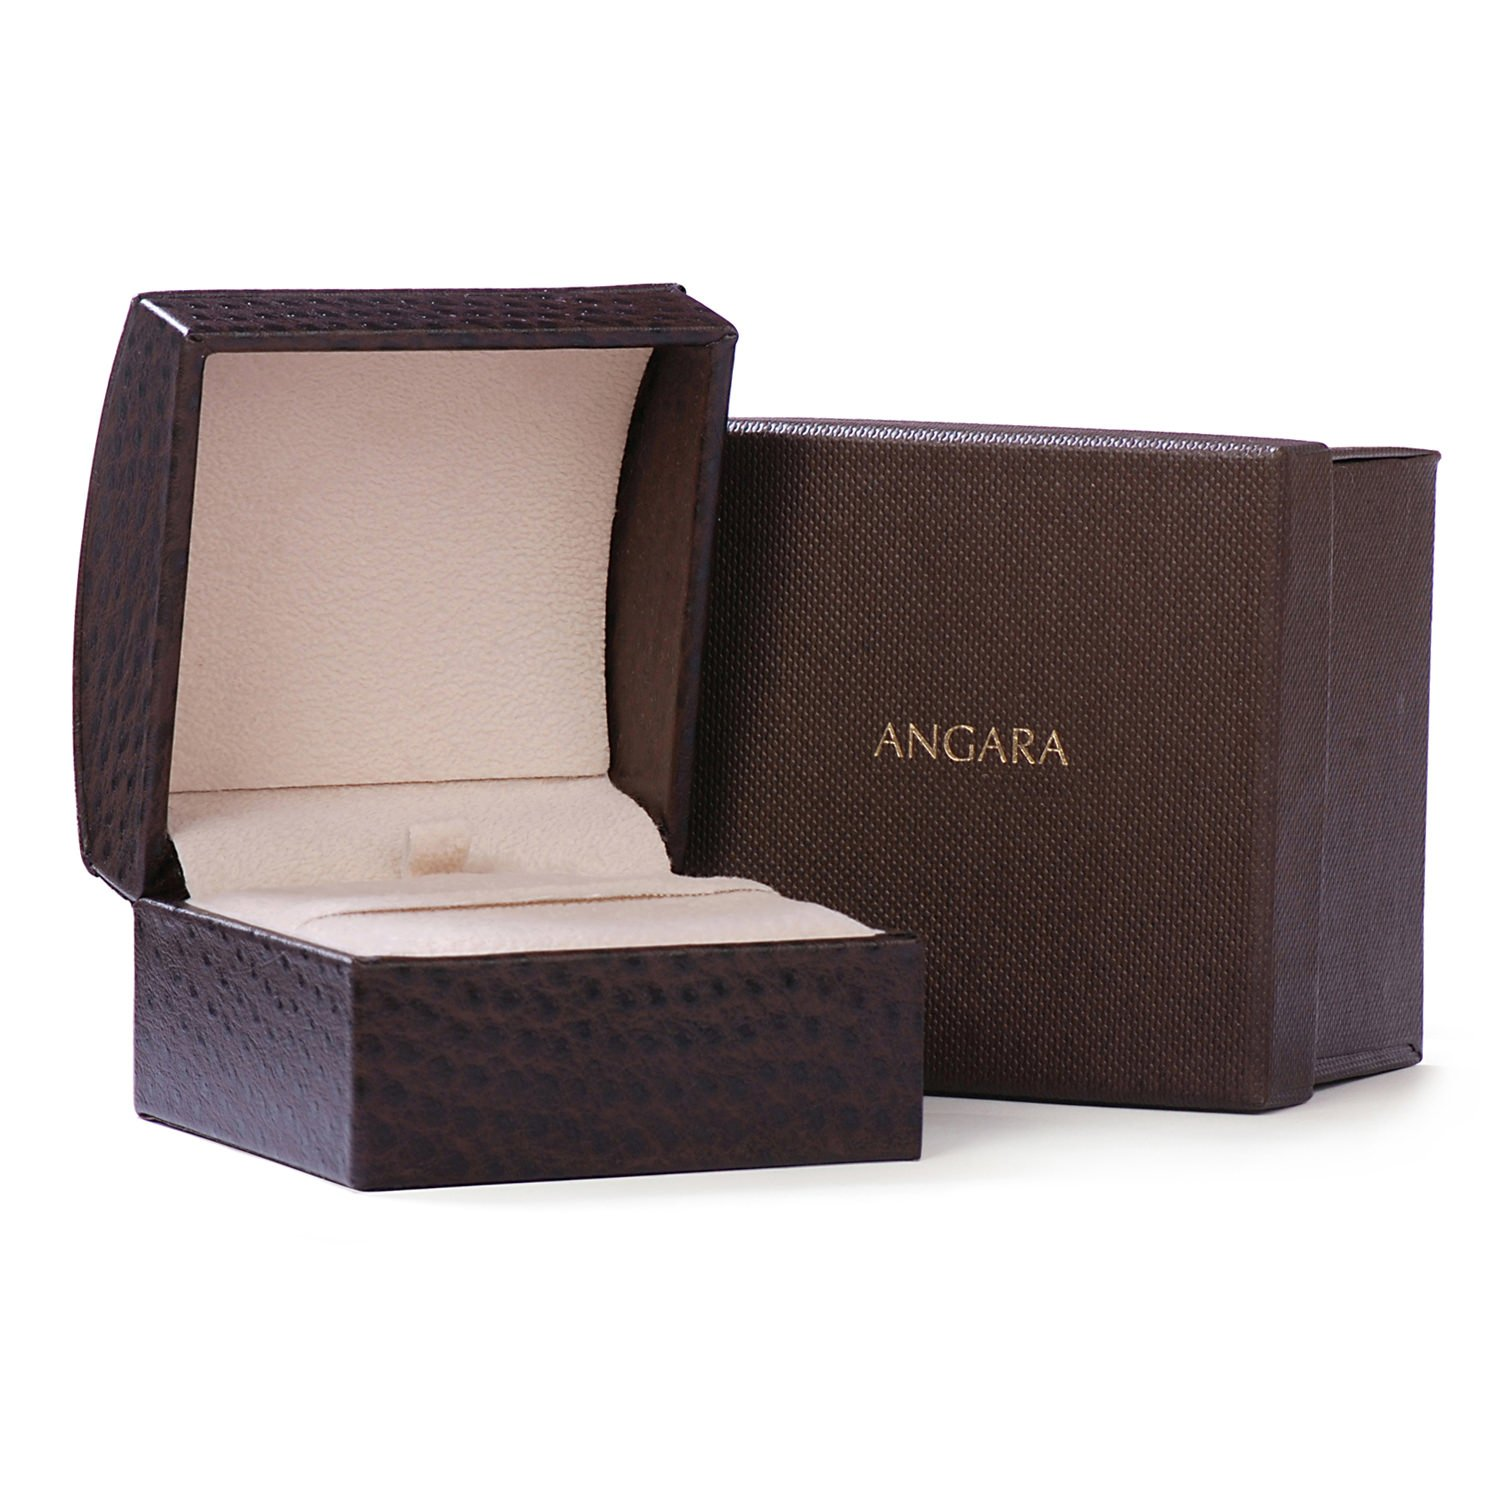 Holiday Offer - December Birthstone - Claw Set Emerald Cut Tanzanite Ring for Women with Diamond Accents in 14K Rose Gold (9mm Tanzanite) by Angara.com (Image #5)